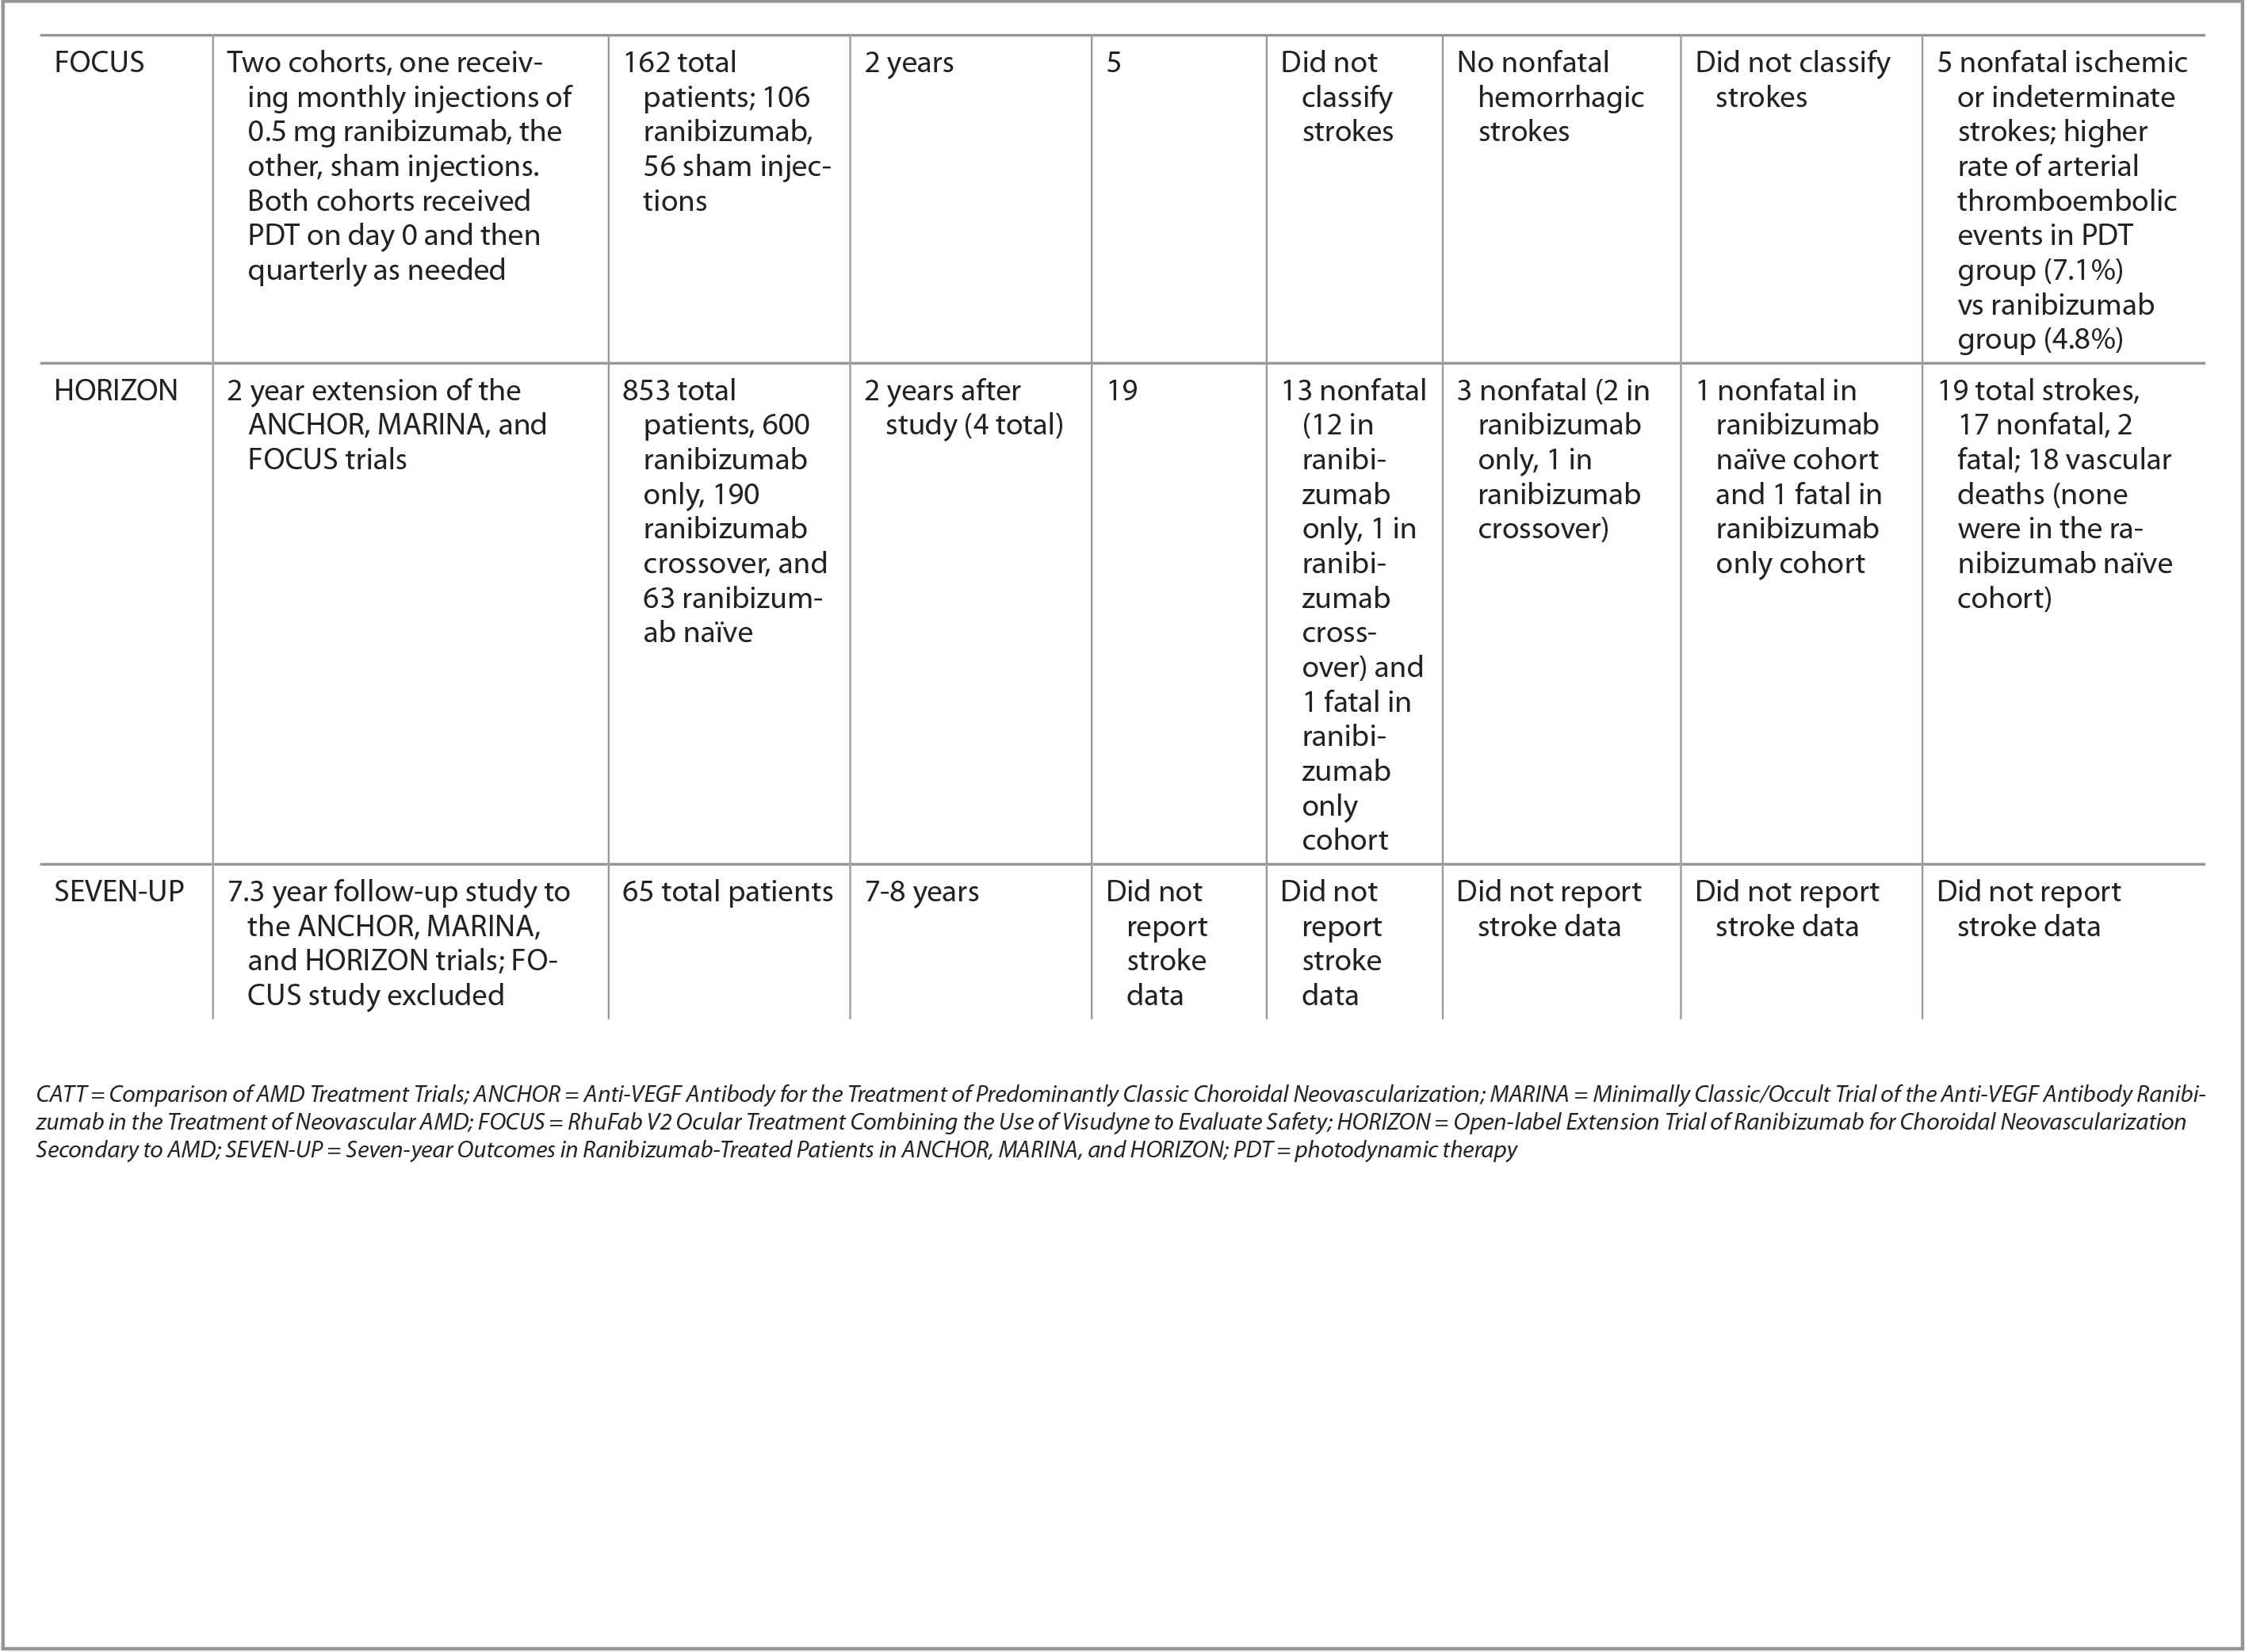 Comparison of the CATT, ANCHOR, MARINA, FOCUS, HORIZON, and SEVEN-UP Trials With Regard to Stroke Data